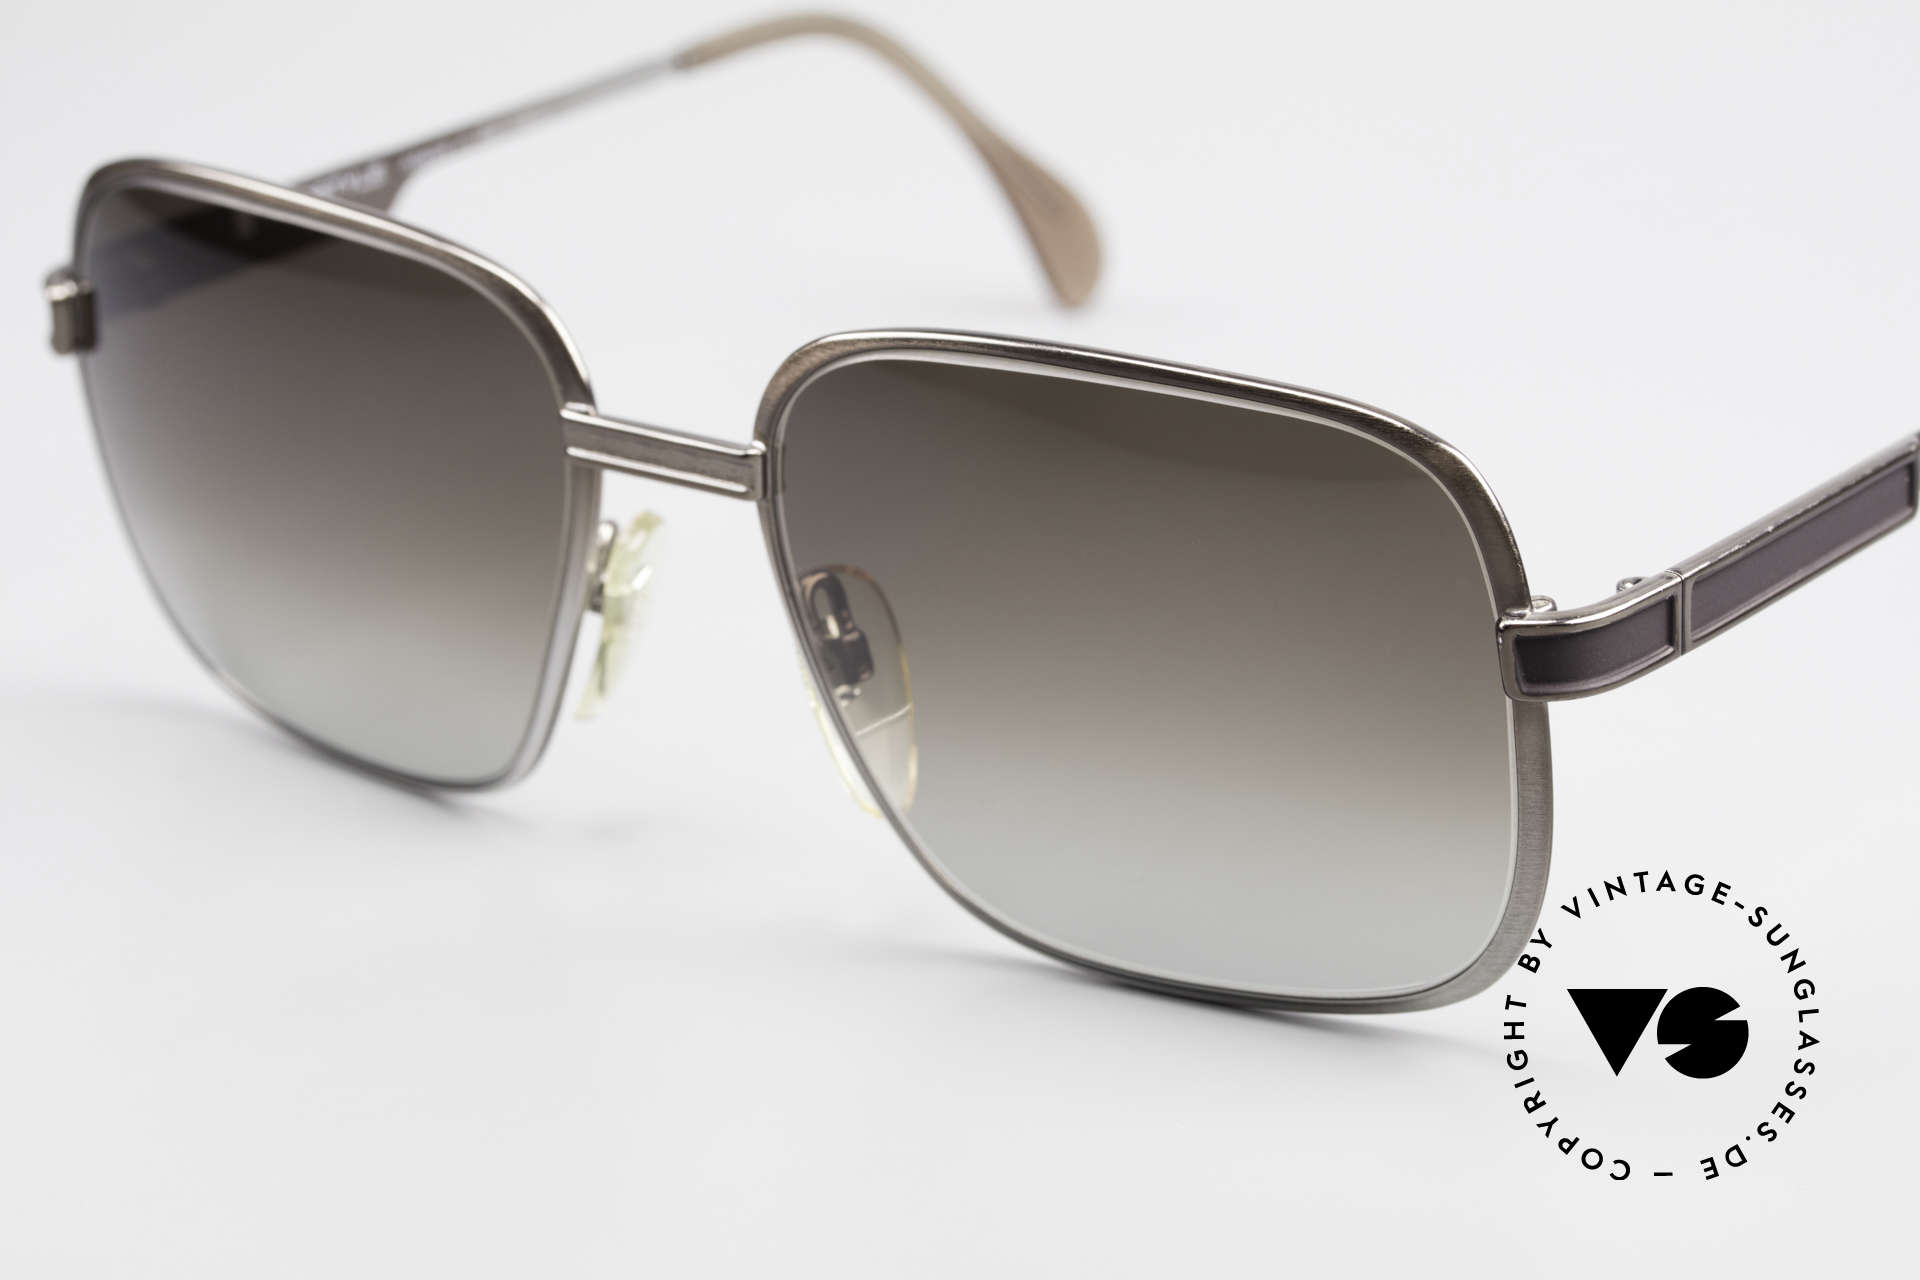 Neostyle Society 190 80's Haute Couture Sunglasses, unworn (like all our Neostyle gentlemen's shades), Made for Men